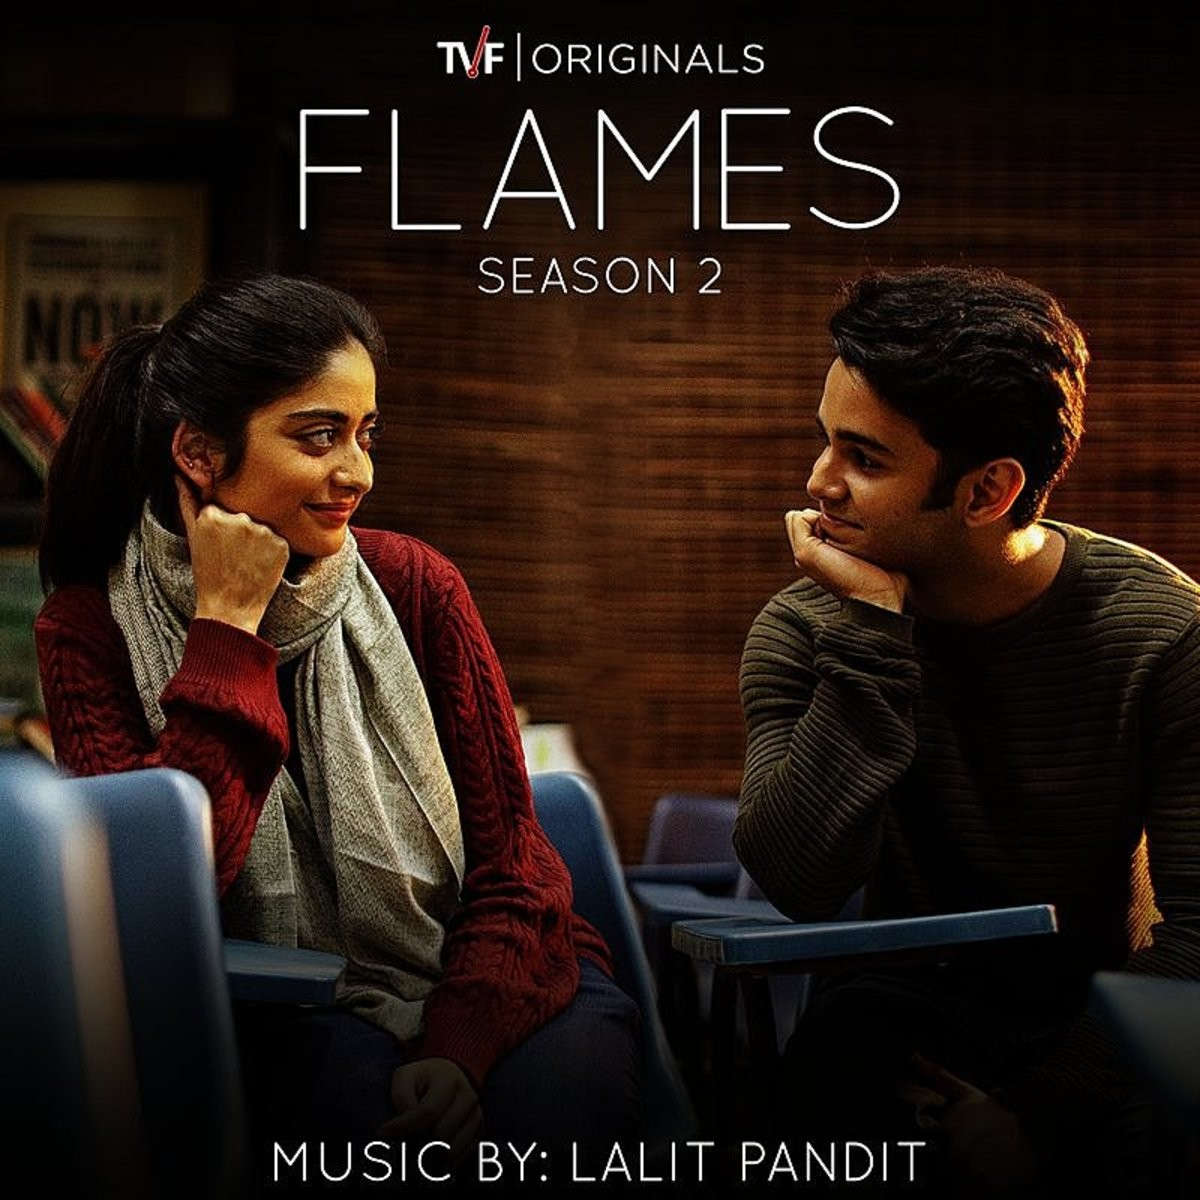 Flames Season 2 Download - Watch Flames Season 2 episodes online on Mx Player for Free. Flames Season 2 Download all episodes free on Mx Player. Flames Season 2 on Mx Player.